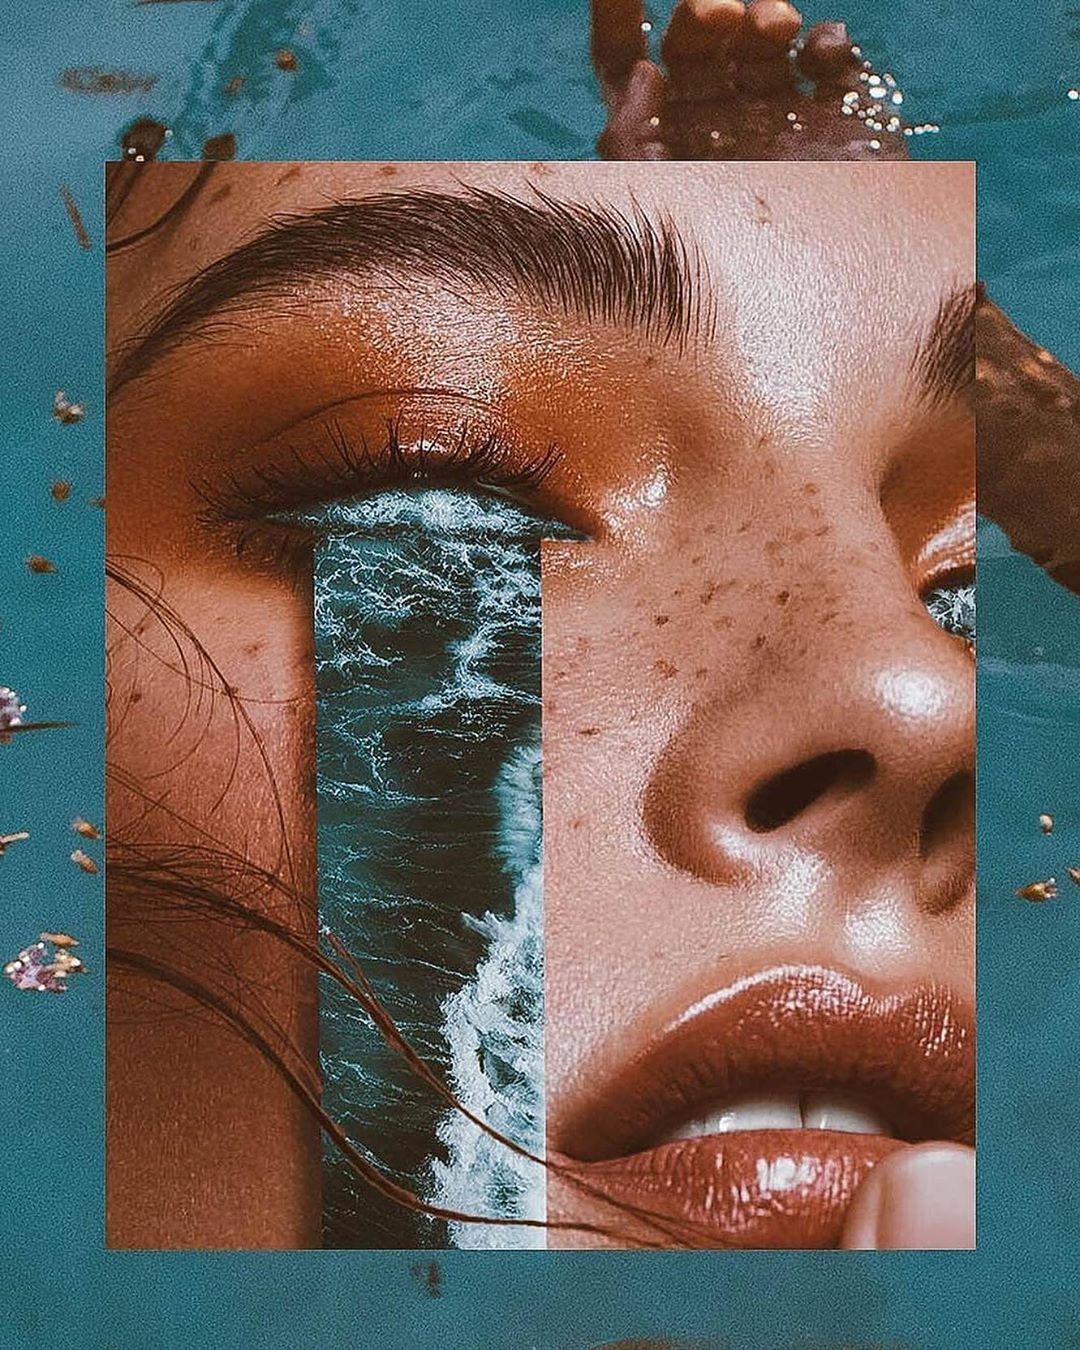 """Saatchi Gallery on Instagram: """"Monday blues? ⠀⠀⠀⠀⠀⠀⠀⠀⠀⠀⠀⠀ We love collage artist Denis Sheckler's, 'Ocean of Tears'. ⠀⠀⠀⠀⠀⠀⠀⠀⠀⠀⠀⠀ #MondayMotivaion #Collage #Photography…"""" #wallcollage"""